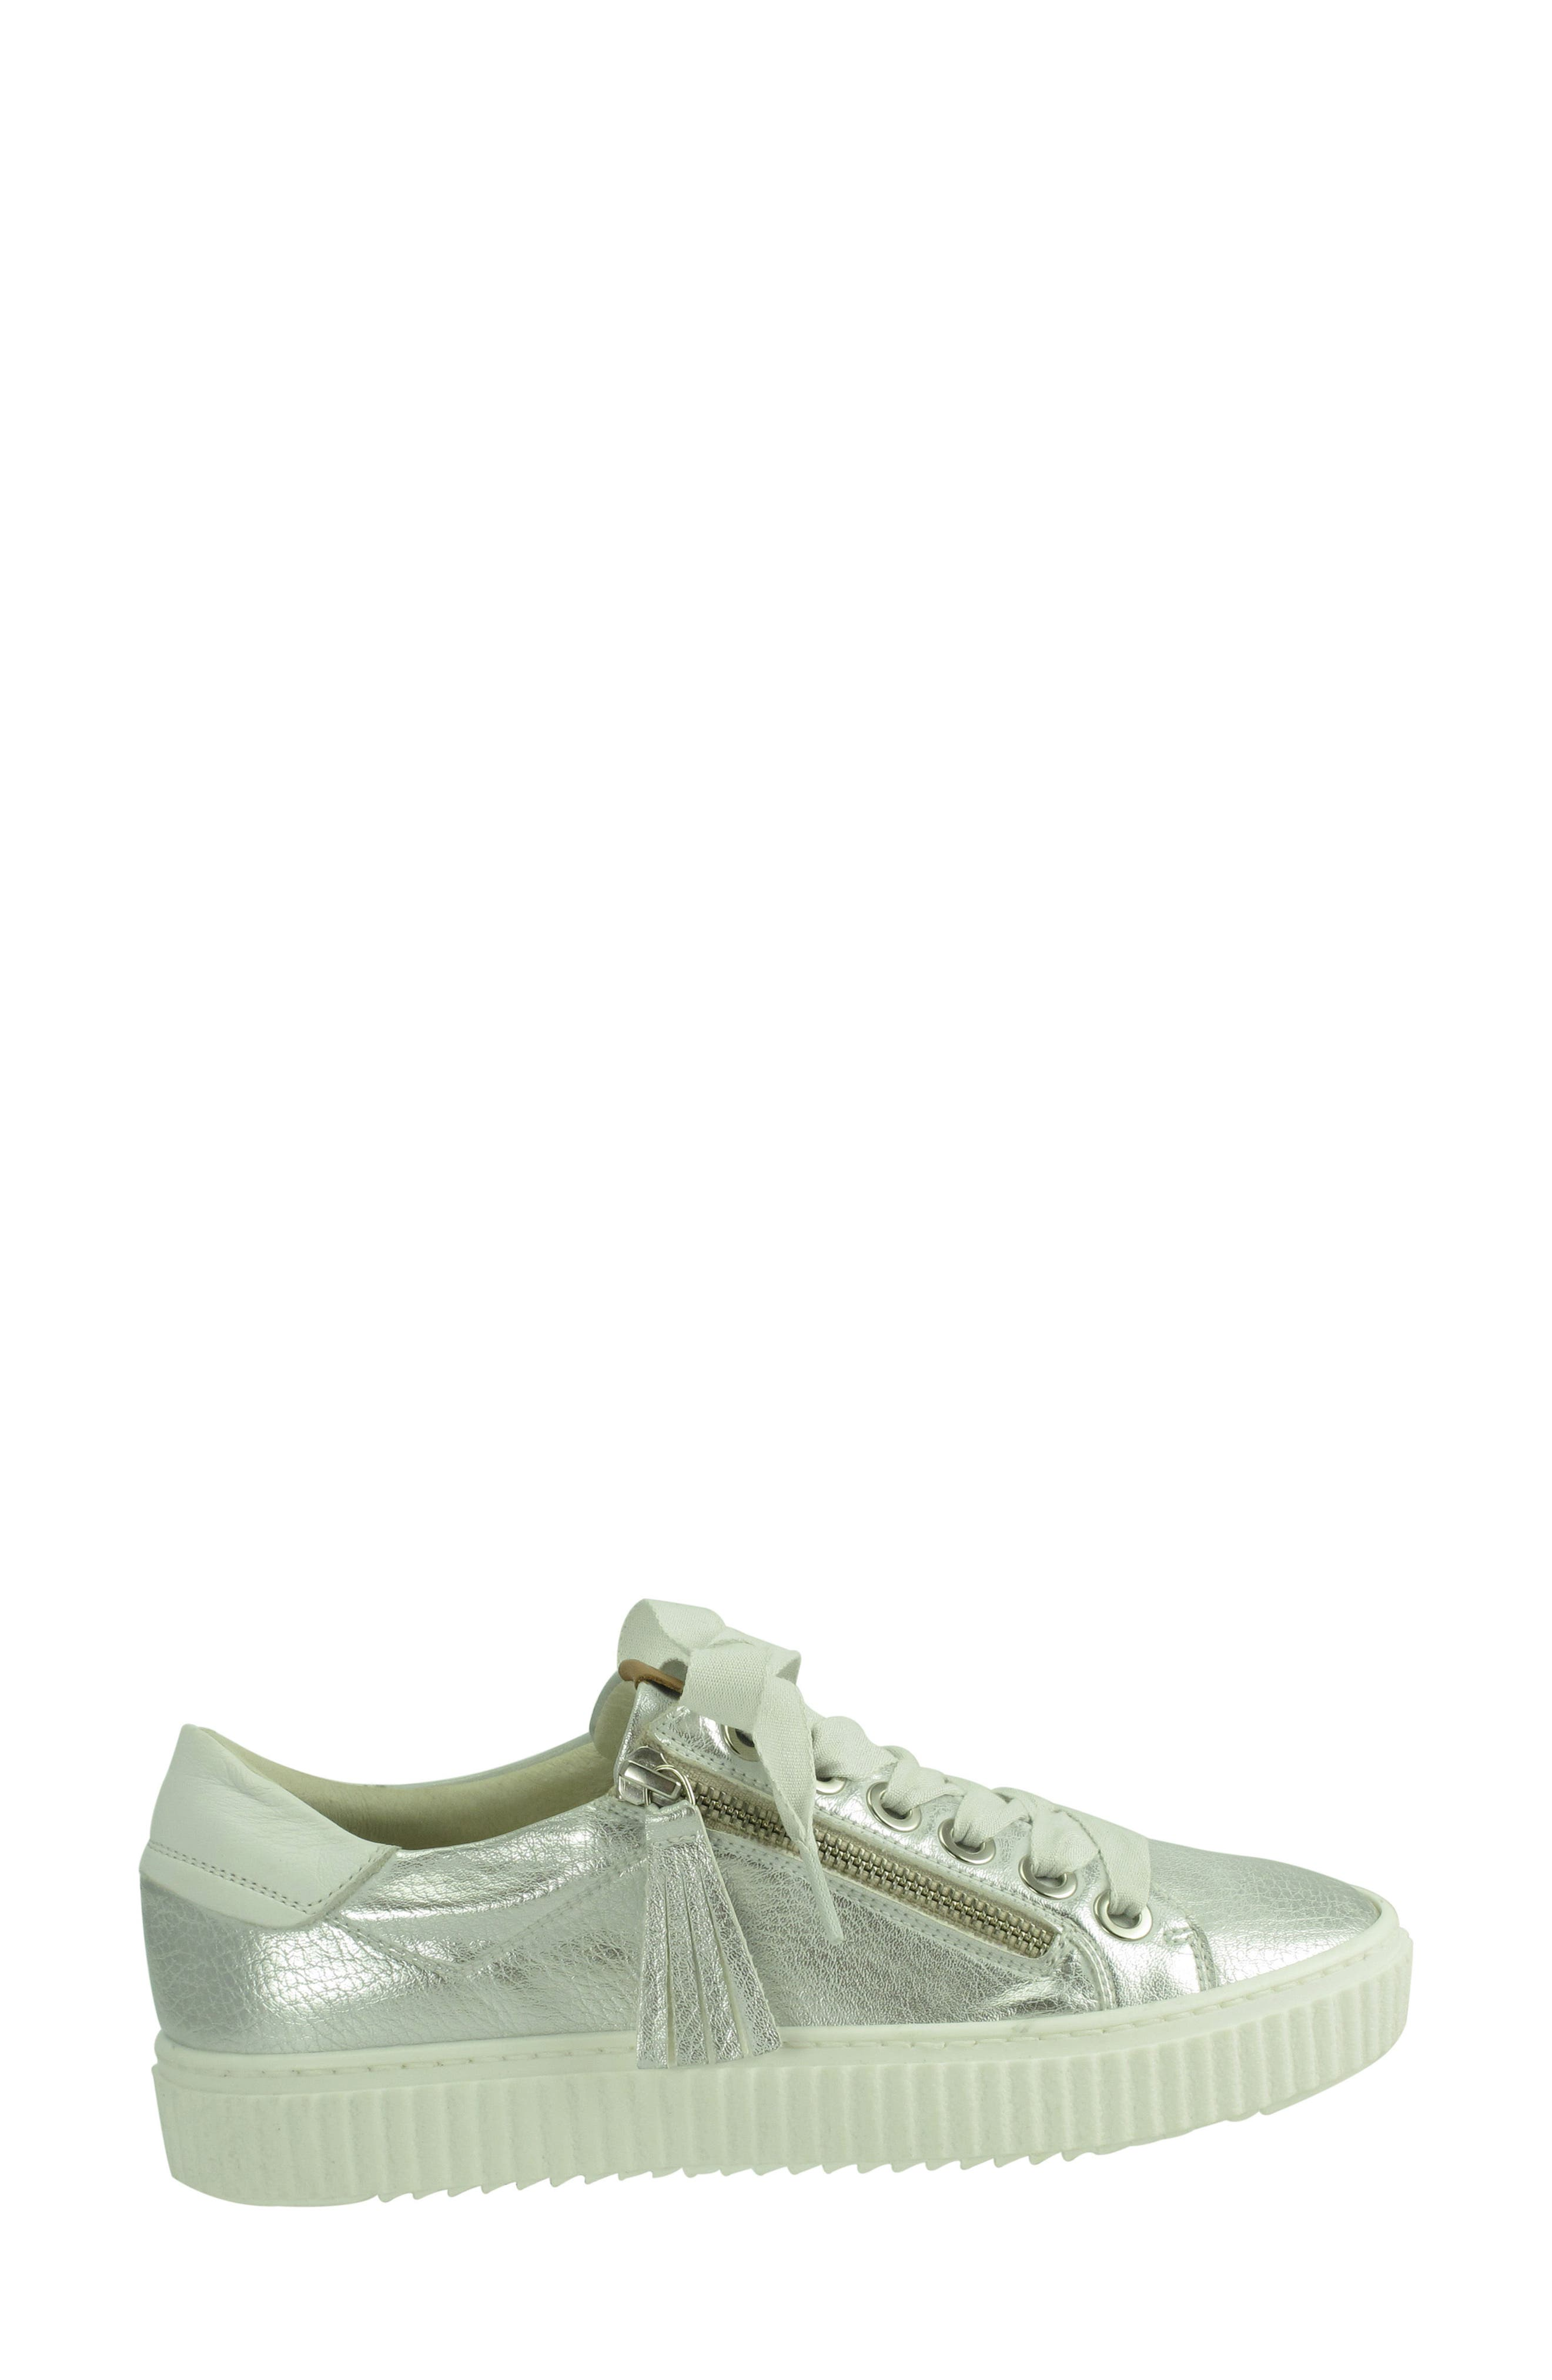 Posey Sneaker,                             Alternate thumbnail 3, color,                             SILVER LEATHER